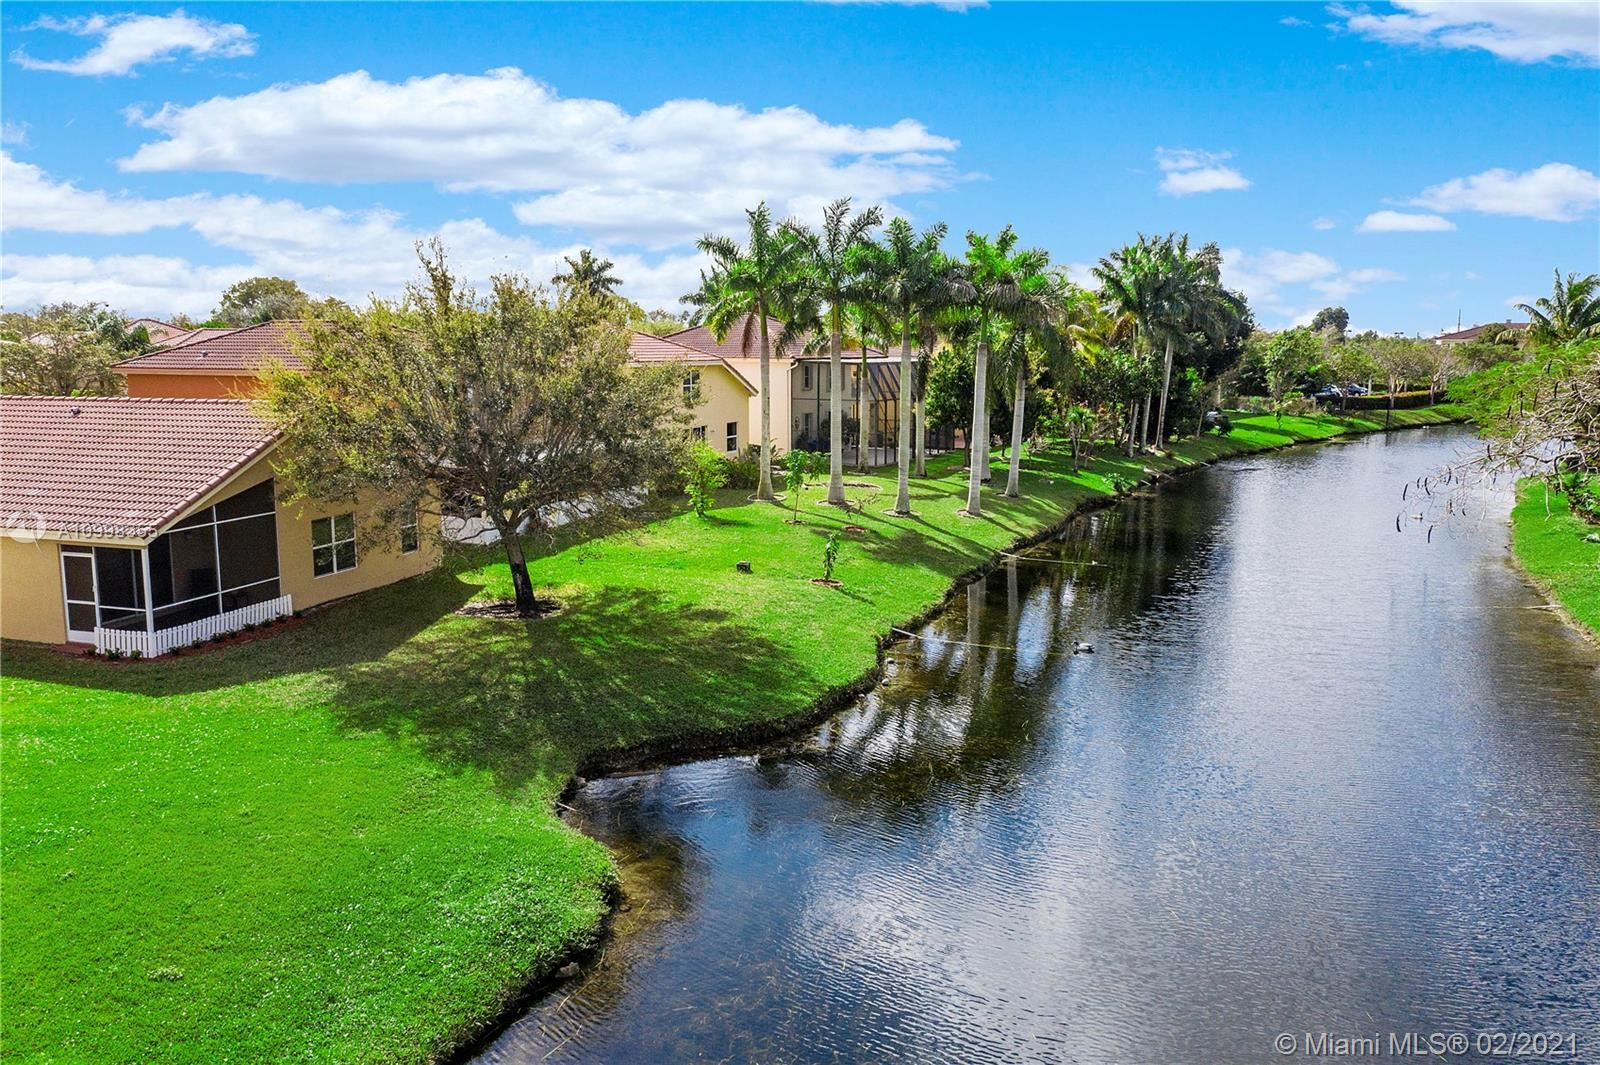 Photo of 380 NW 115th Way, Coral Springs, FL 33071 (MLS # A10998355)